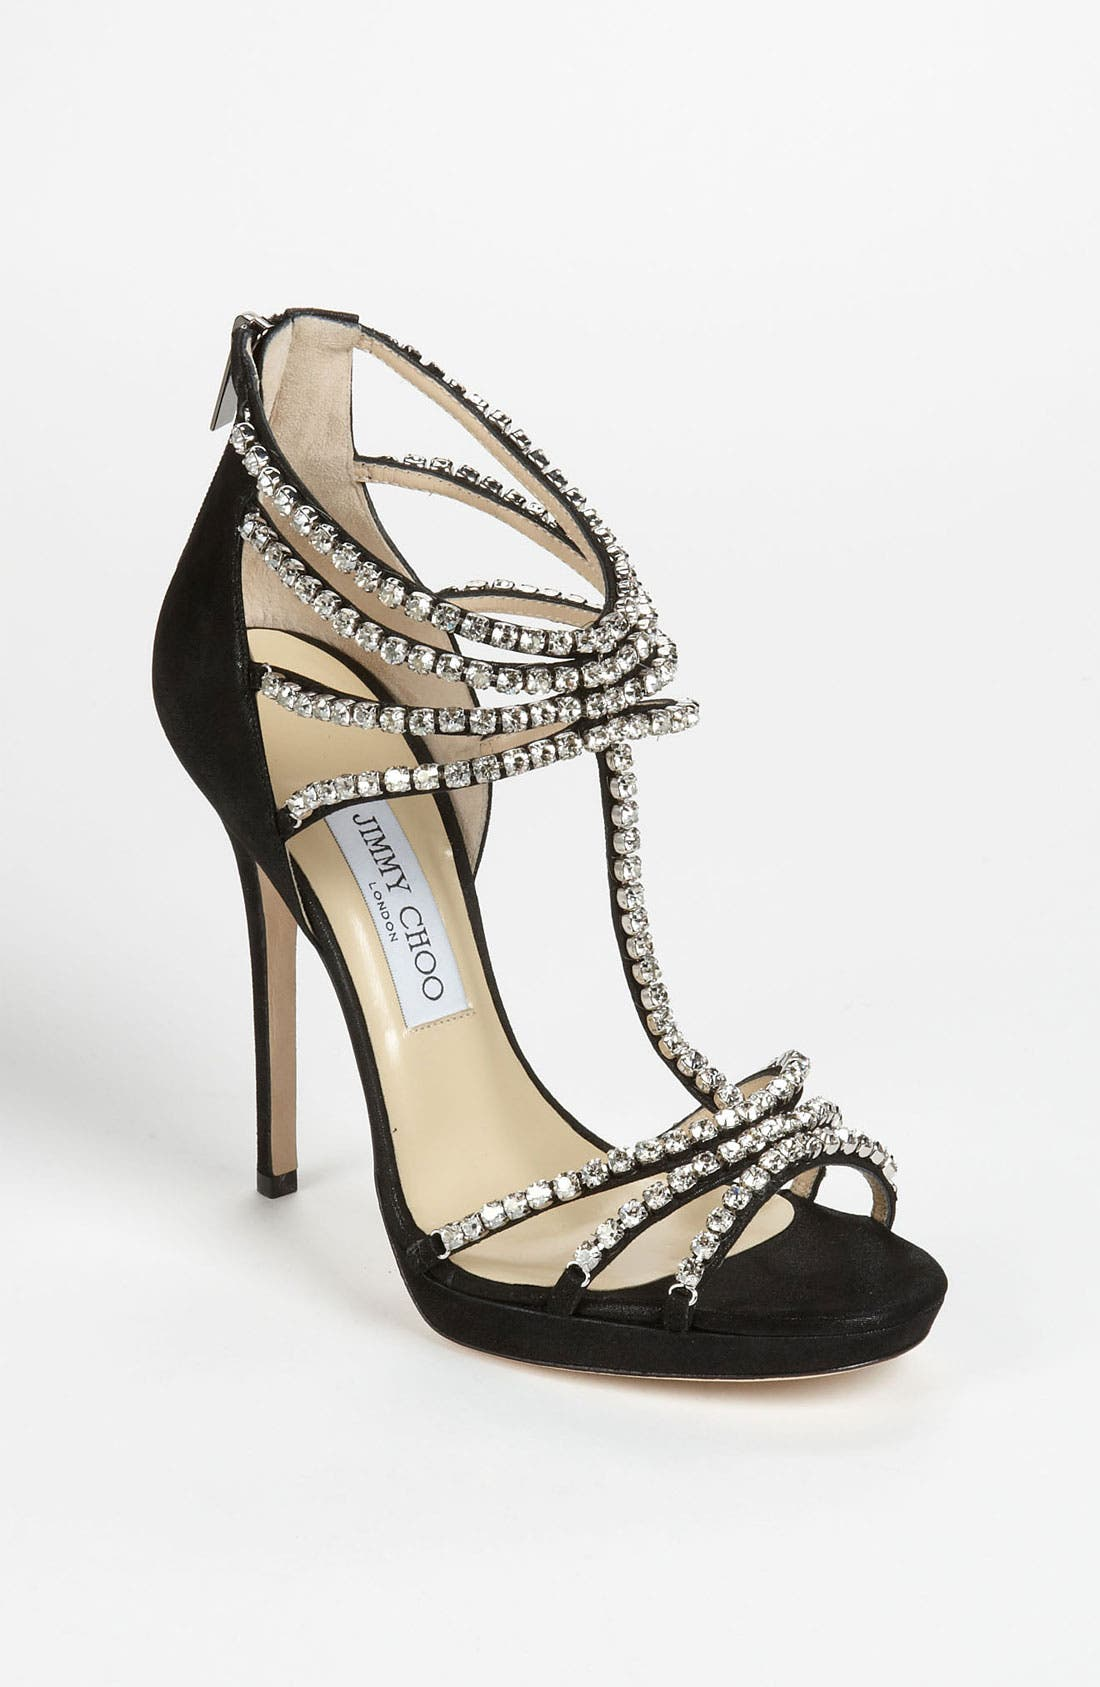 Alternate Image 1 Selected - Jimmy Choo 'Kera' Platform Sandal